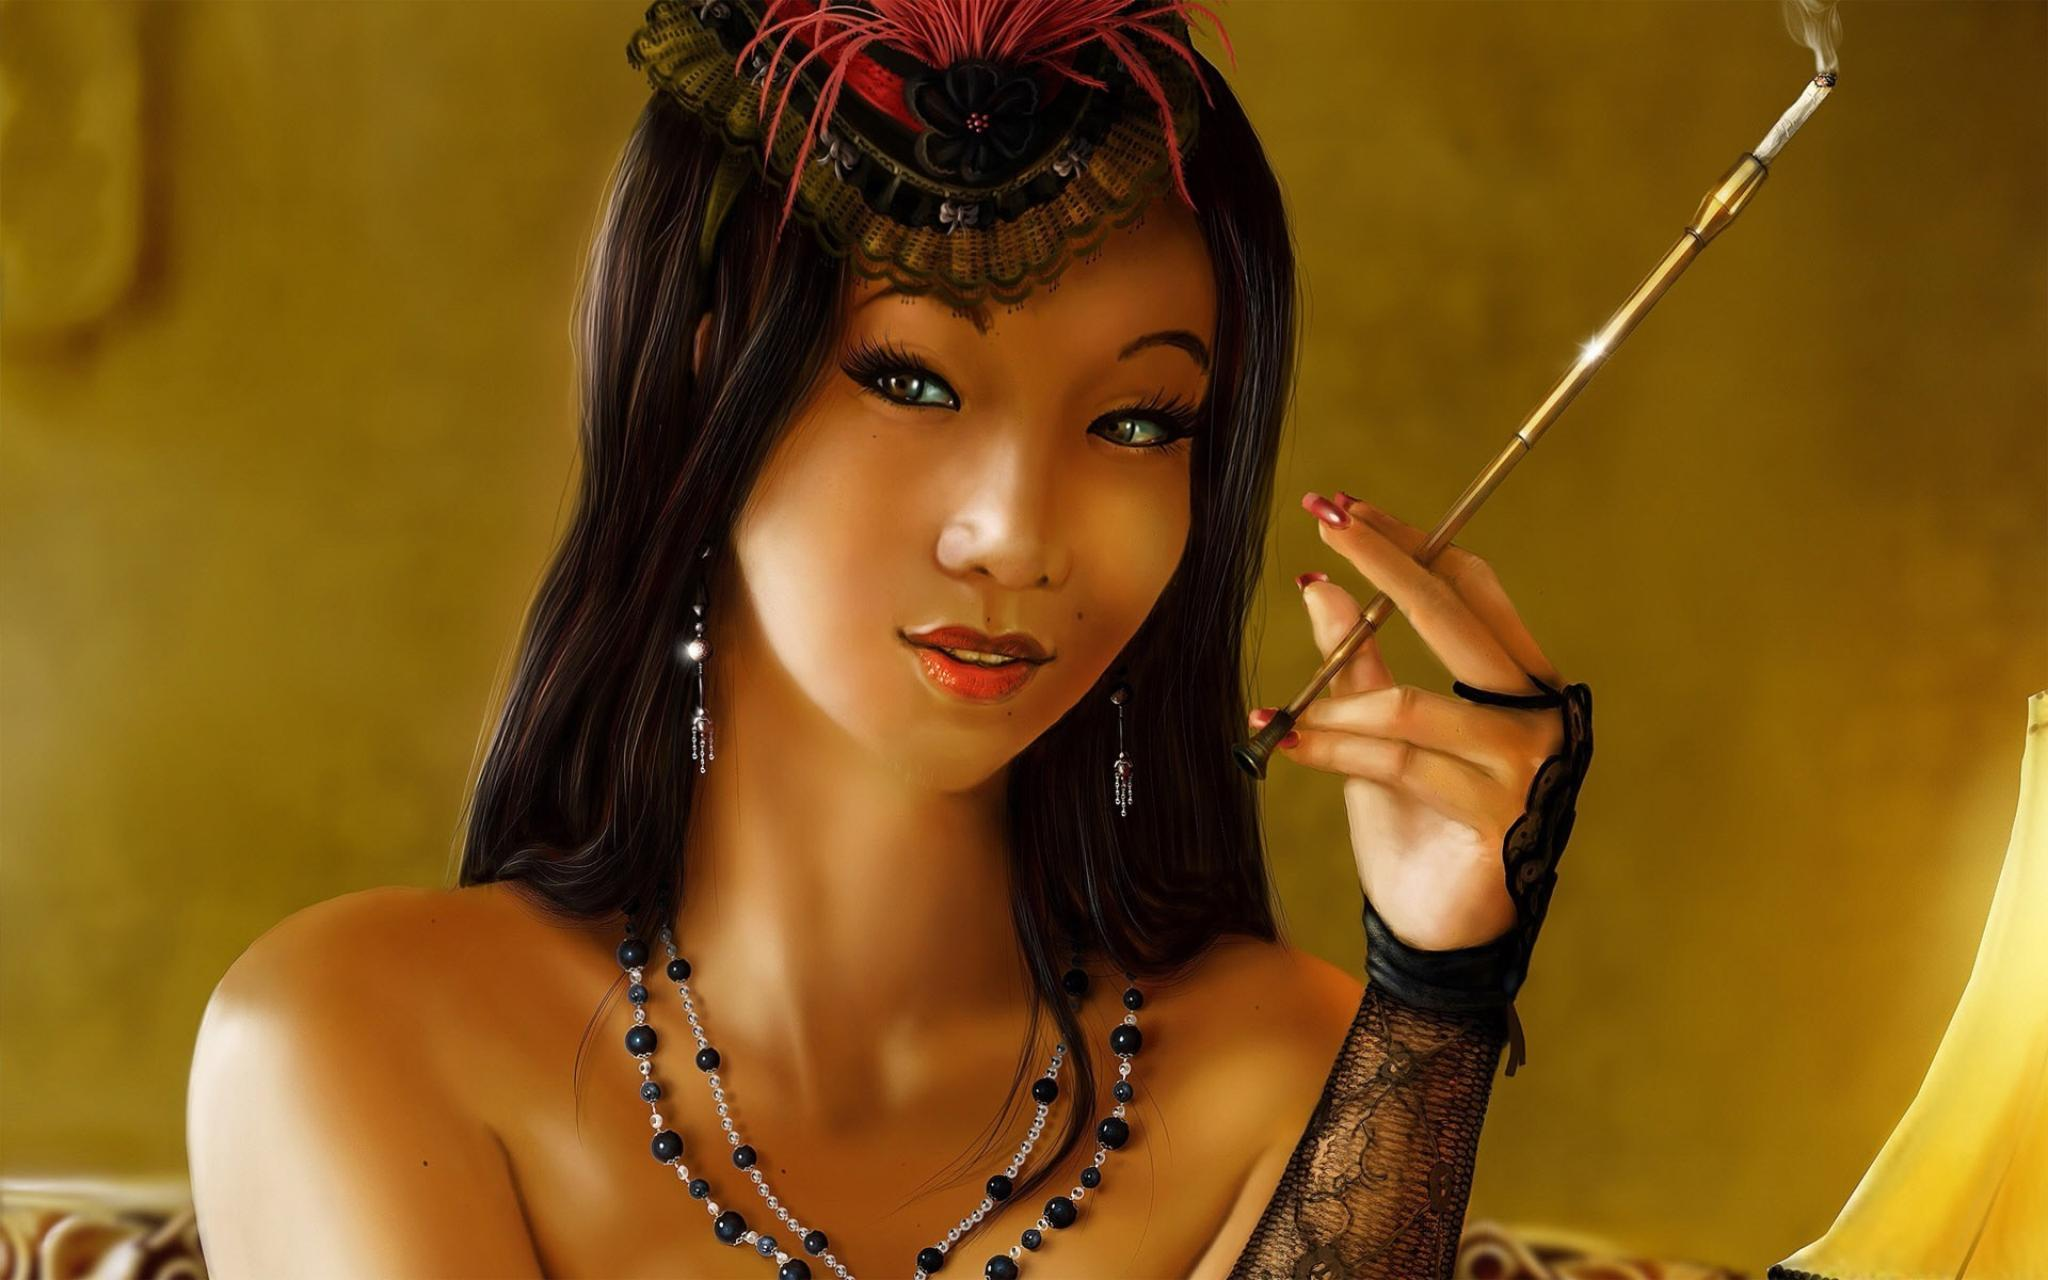 Living room <font><b>home</b></font> wall <font><b>decoration</b></font> fabric poster brunettes long hair <font><b>Asians</b></font> headbands cigarettes faces necklaces open mouth